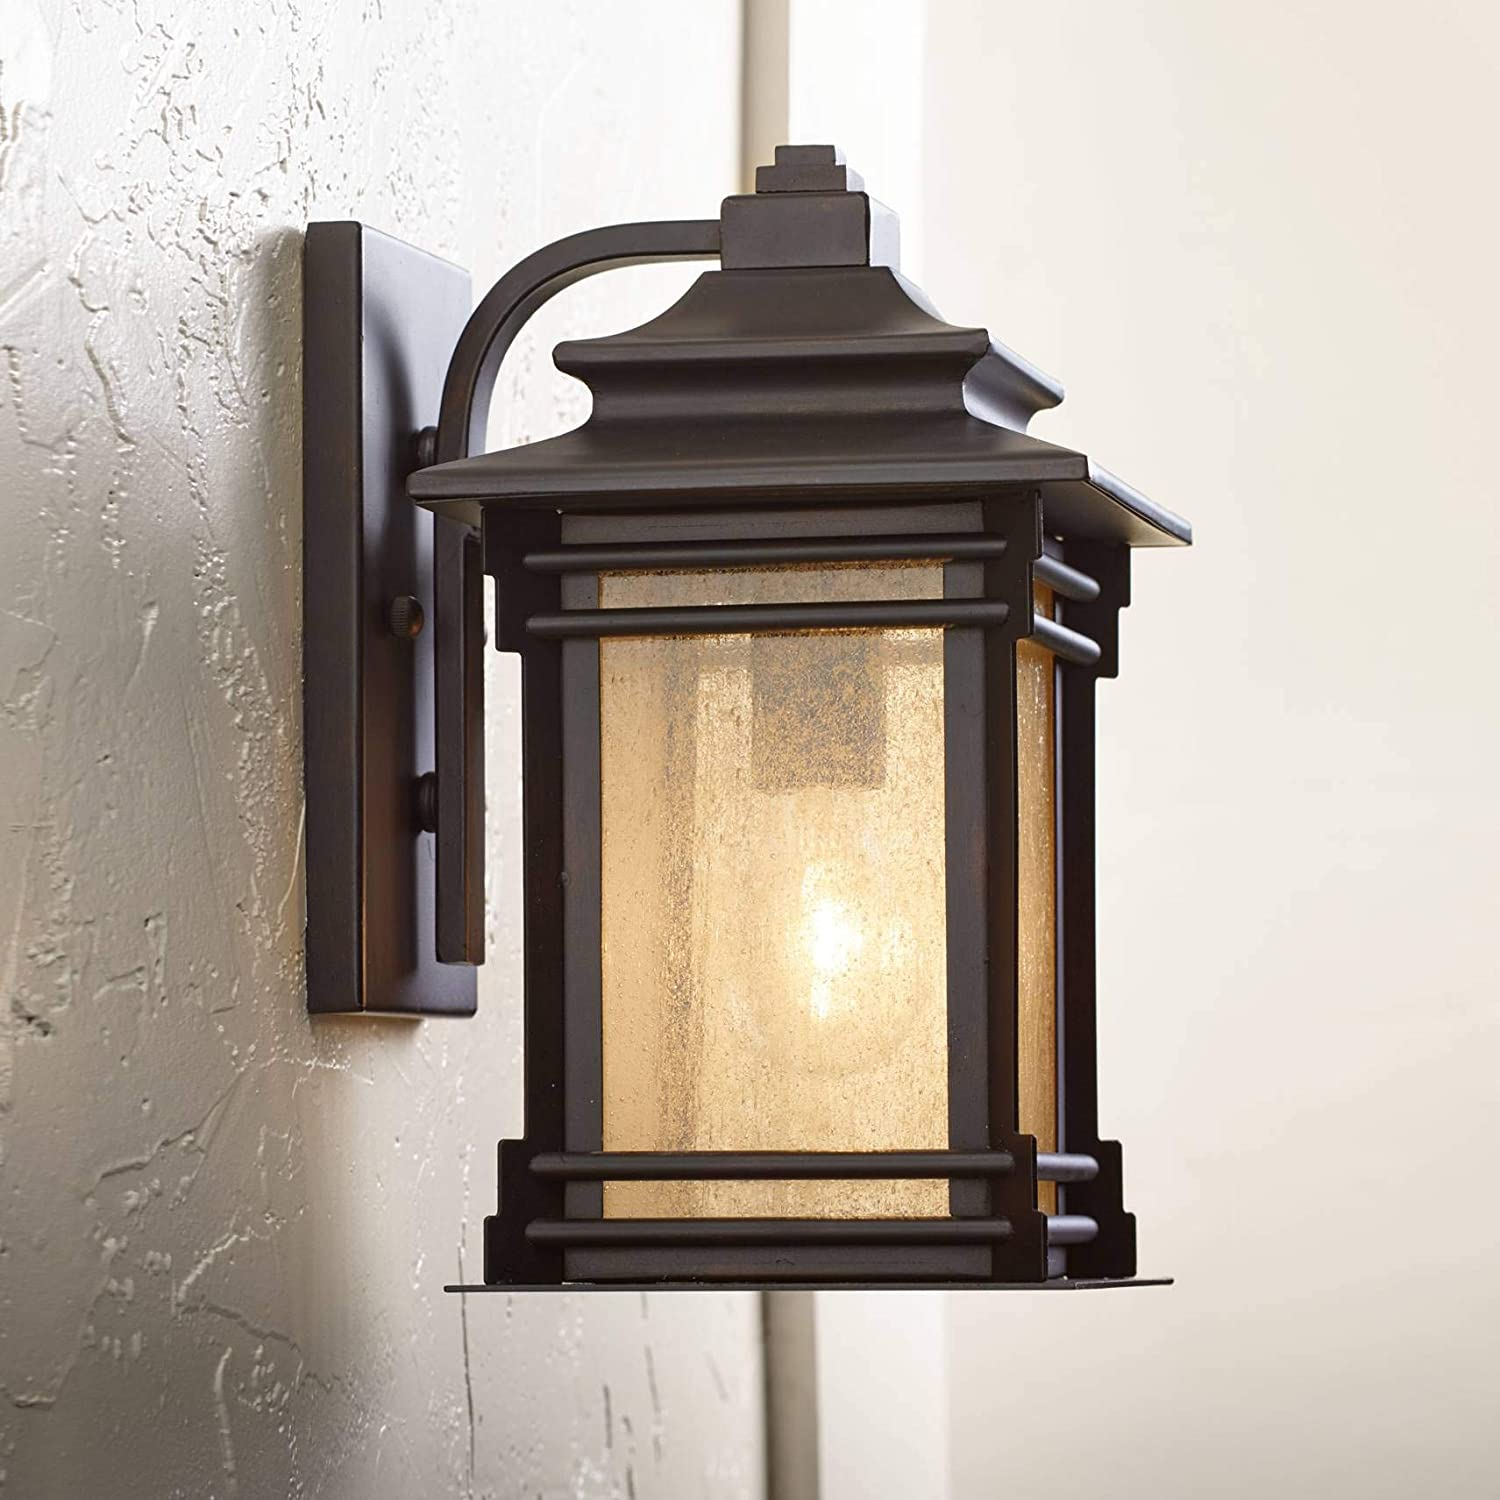 Hickory point 12 high bronze outdoor light mission craftsman style frosted glass panel for patio porch franklin iron works wall porch lights amazon